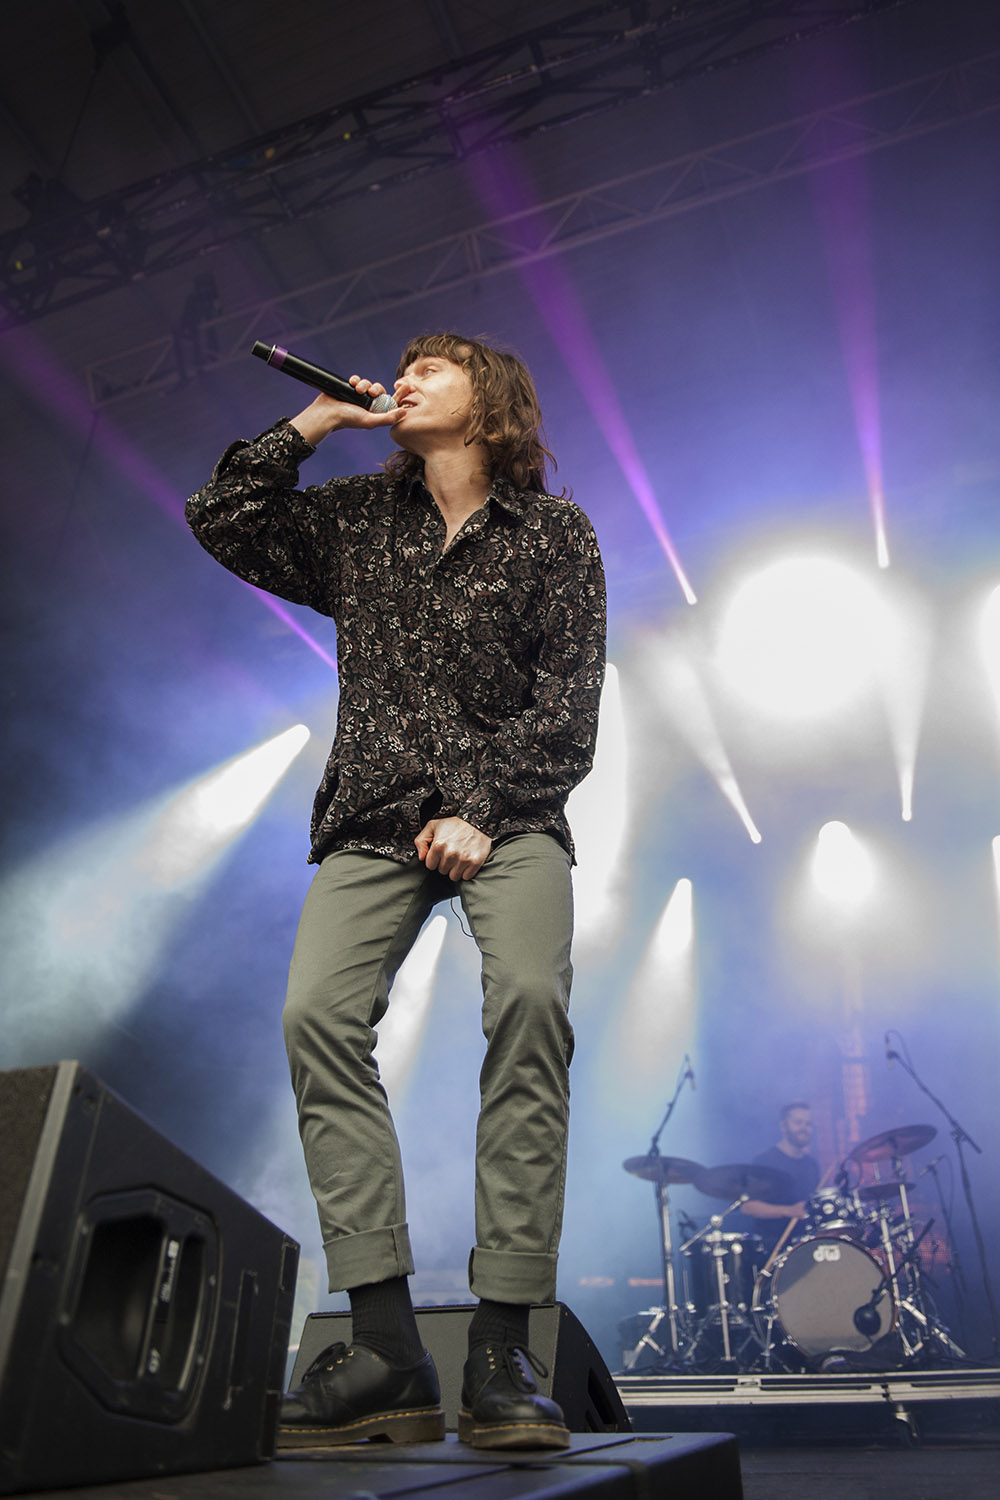 Rapper Allday performs at the 25th annual Falls Music and Arts Festival in Lorne. Image: Kirsty Umback.